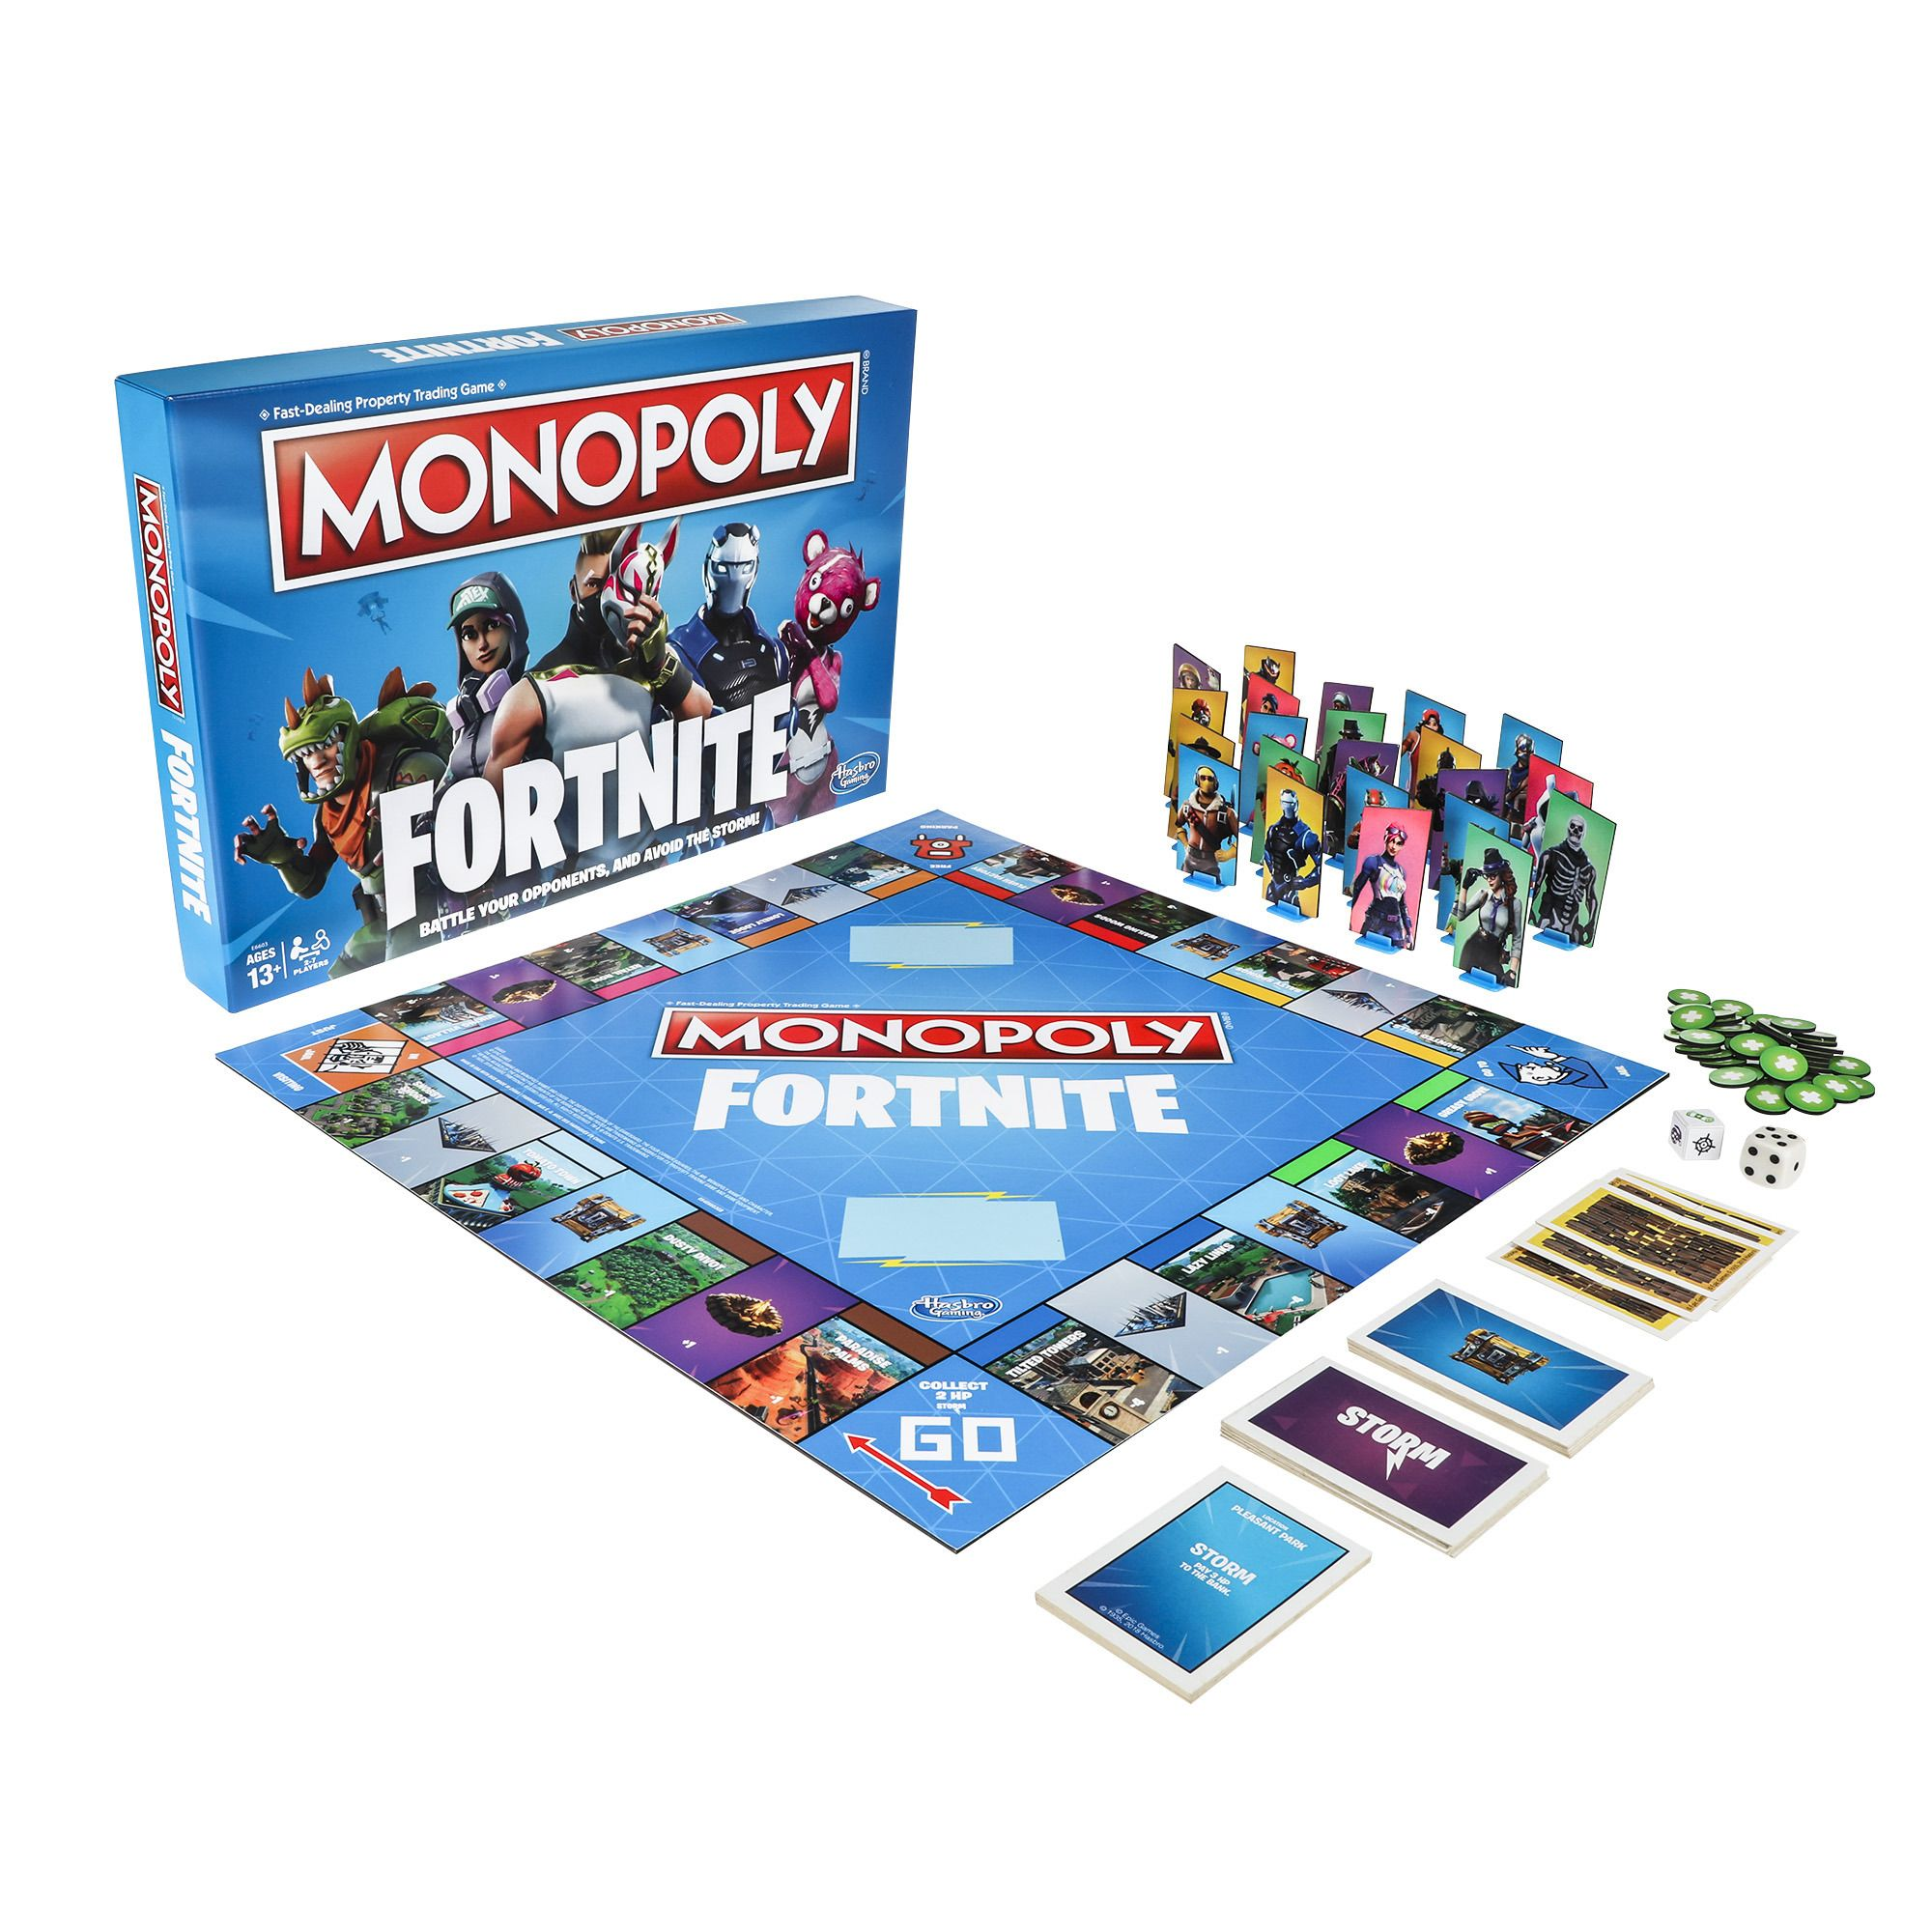 Monopoly Fortnite Edition Inspired By Fortnite Video Game For Ages 13 And Up Walmart Com Family Board Games Monopoly Game Fortnite